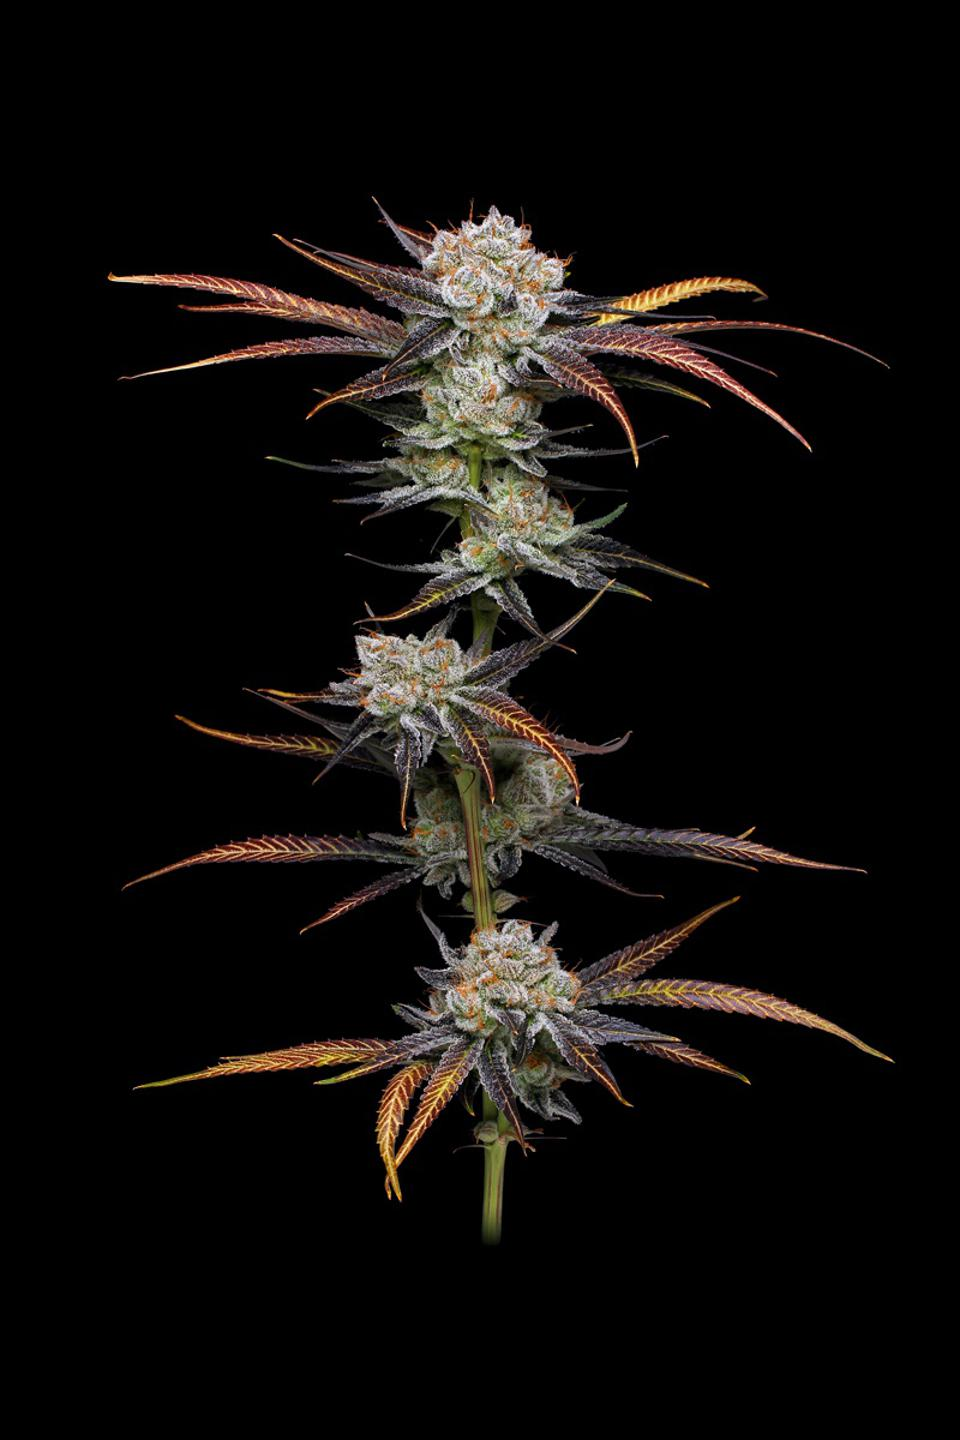 A branch of cannabis flowers (cultivar: Banana Punch) on a black background grown by The Village.